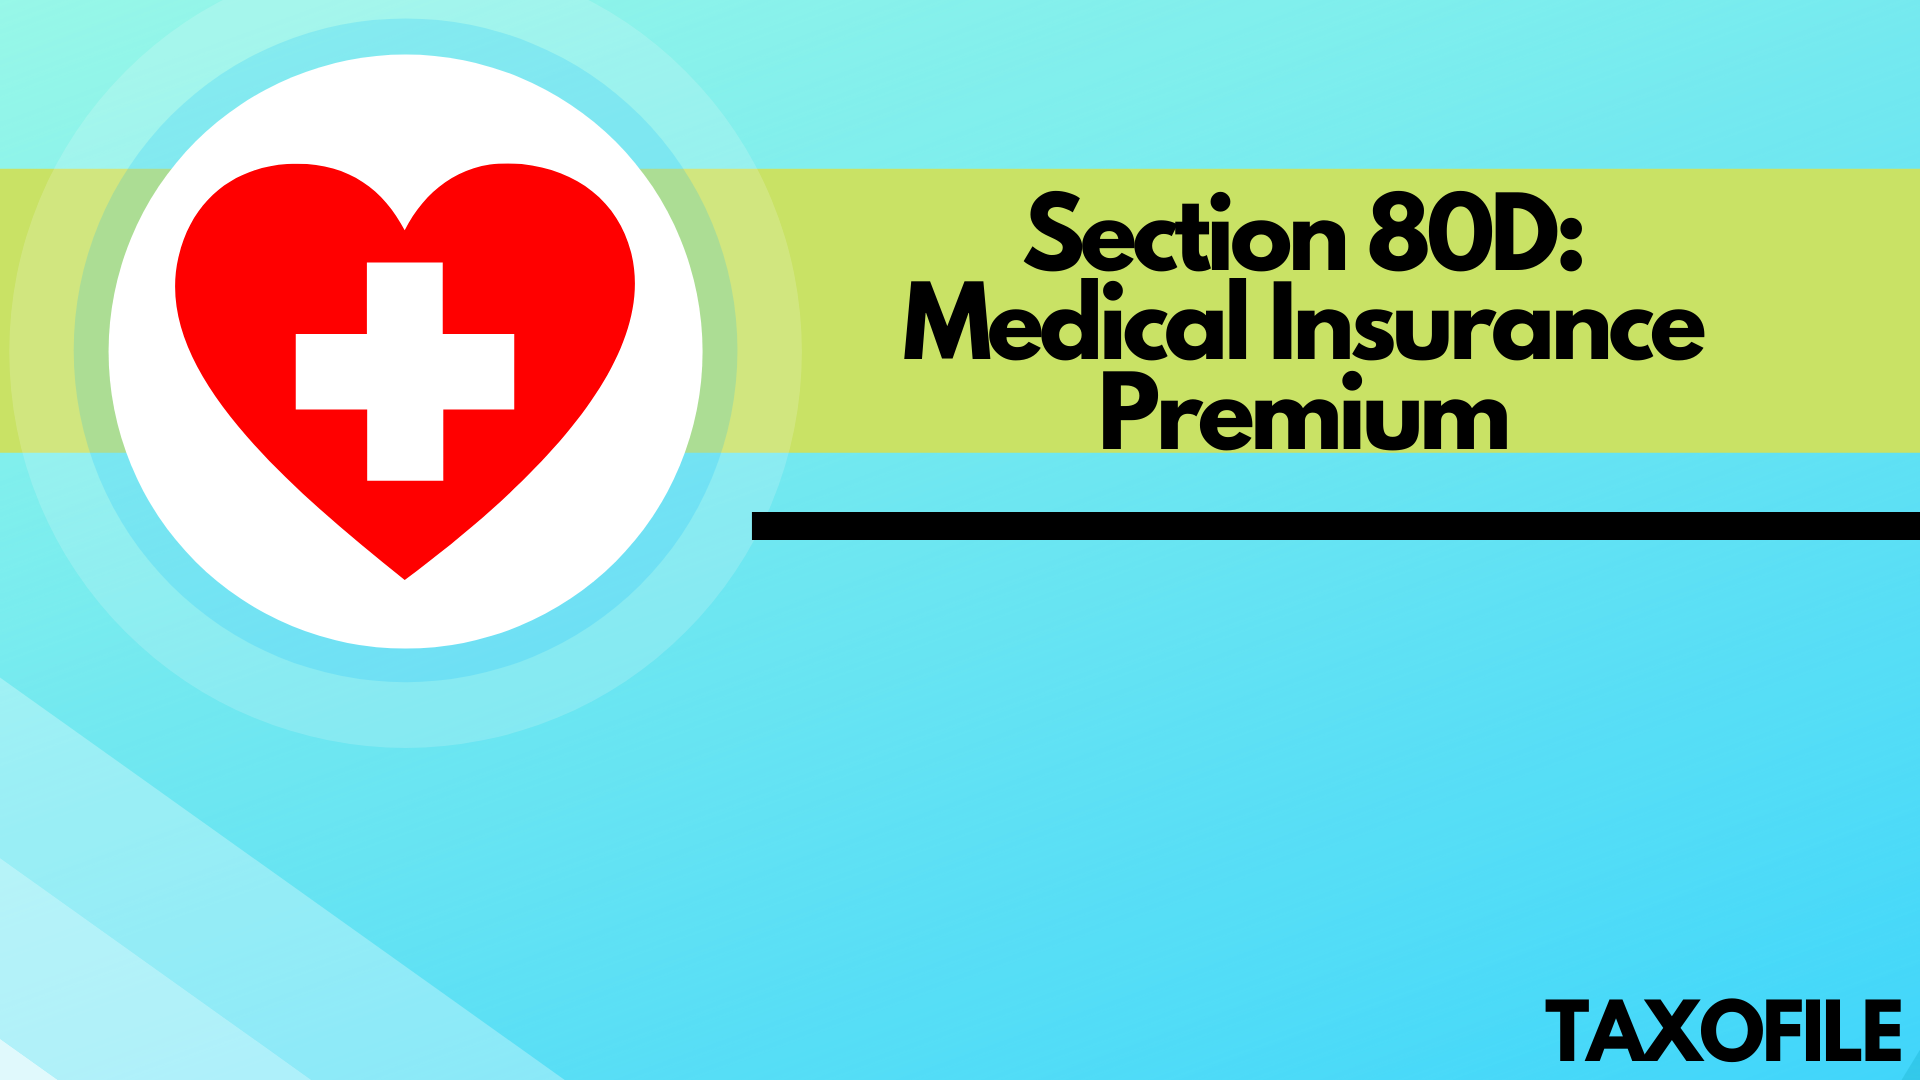 What is Section 80D? Medical Insurance Premium